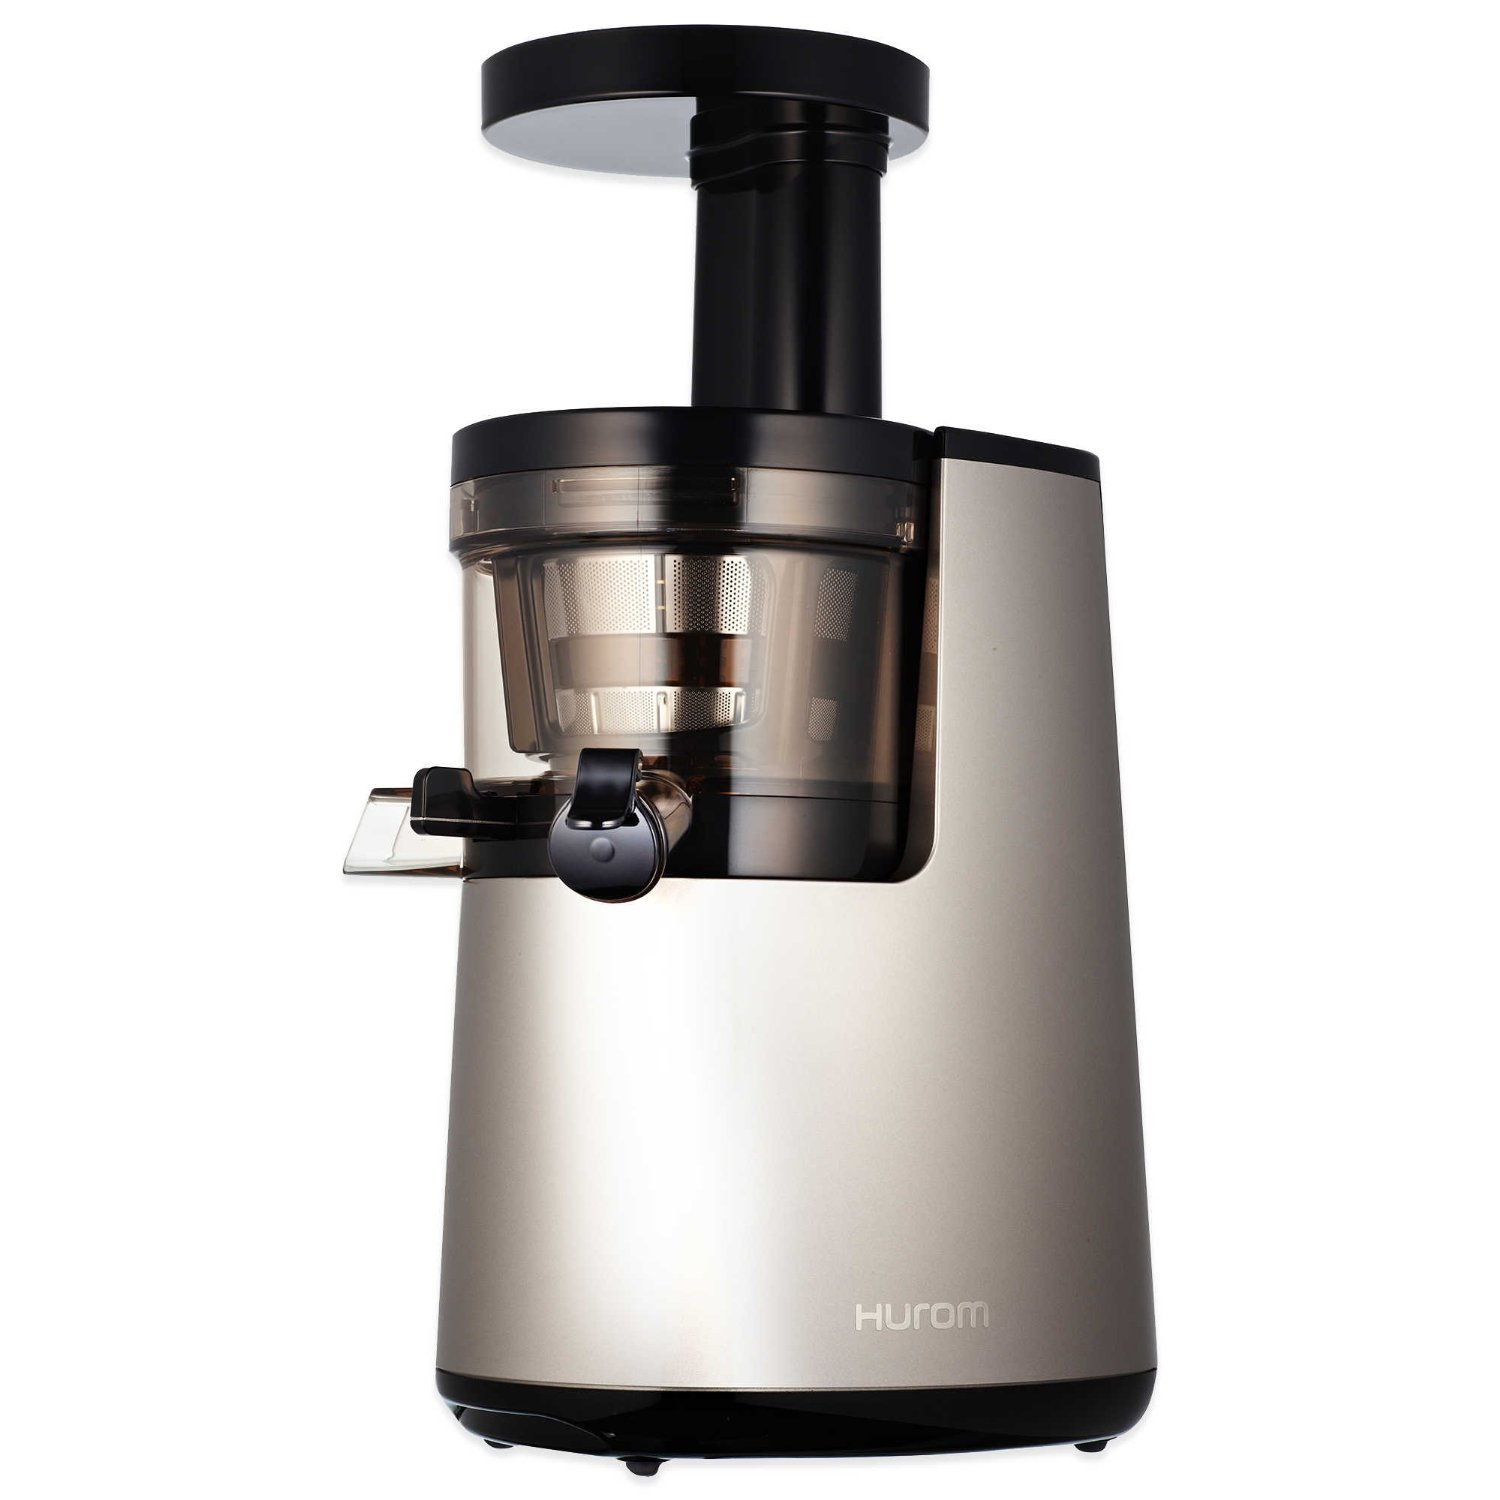 Hurom Slow Juicer Review 2016 : 5 Best Hurom Juicer Reviews UPDATED: 2018 The Home Savant